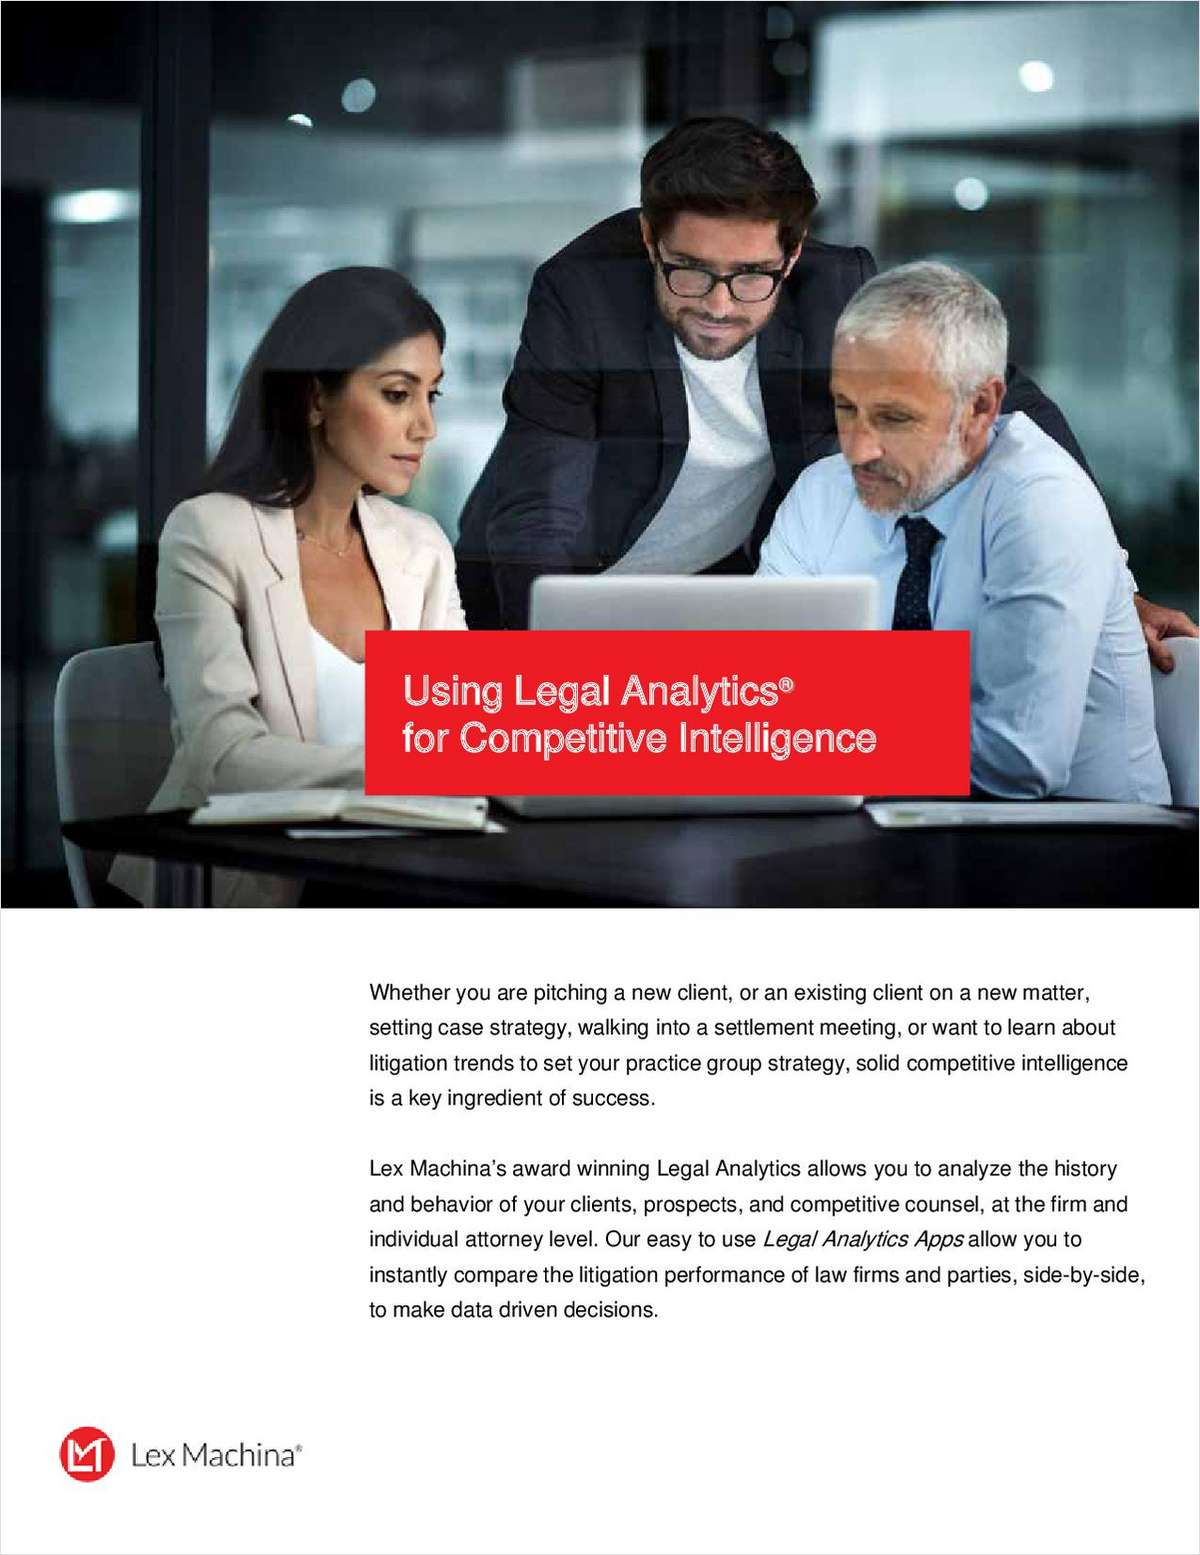 Legal Analytics: Benefits for Competitive Intelligence & Impact on Law Firms